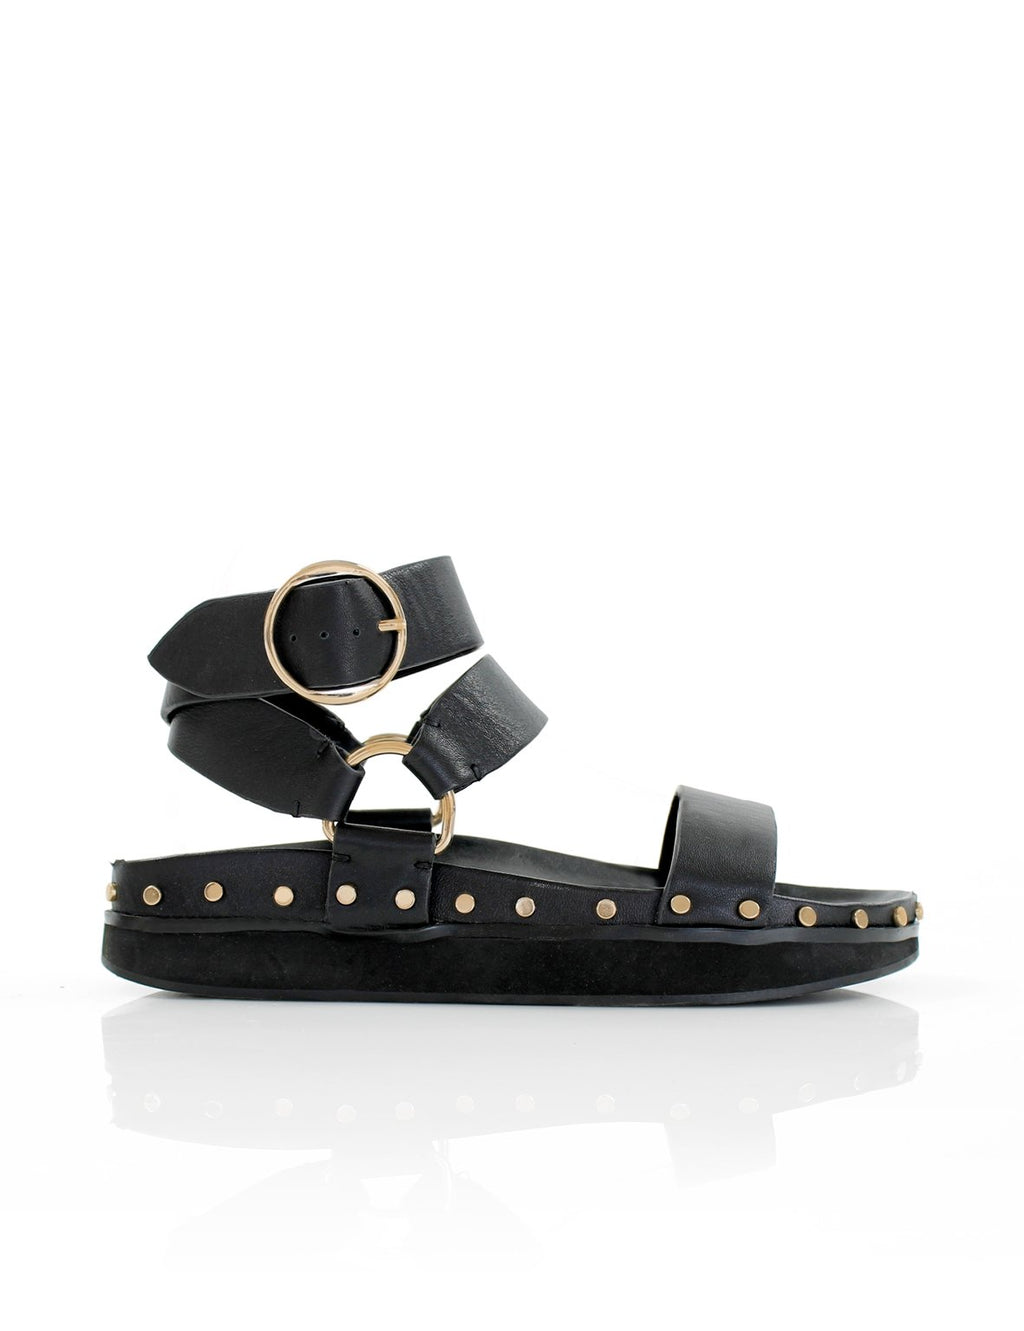 LA TRIBE Studded Sandal Black/Gold